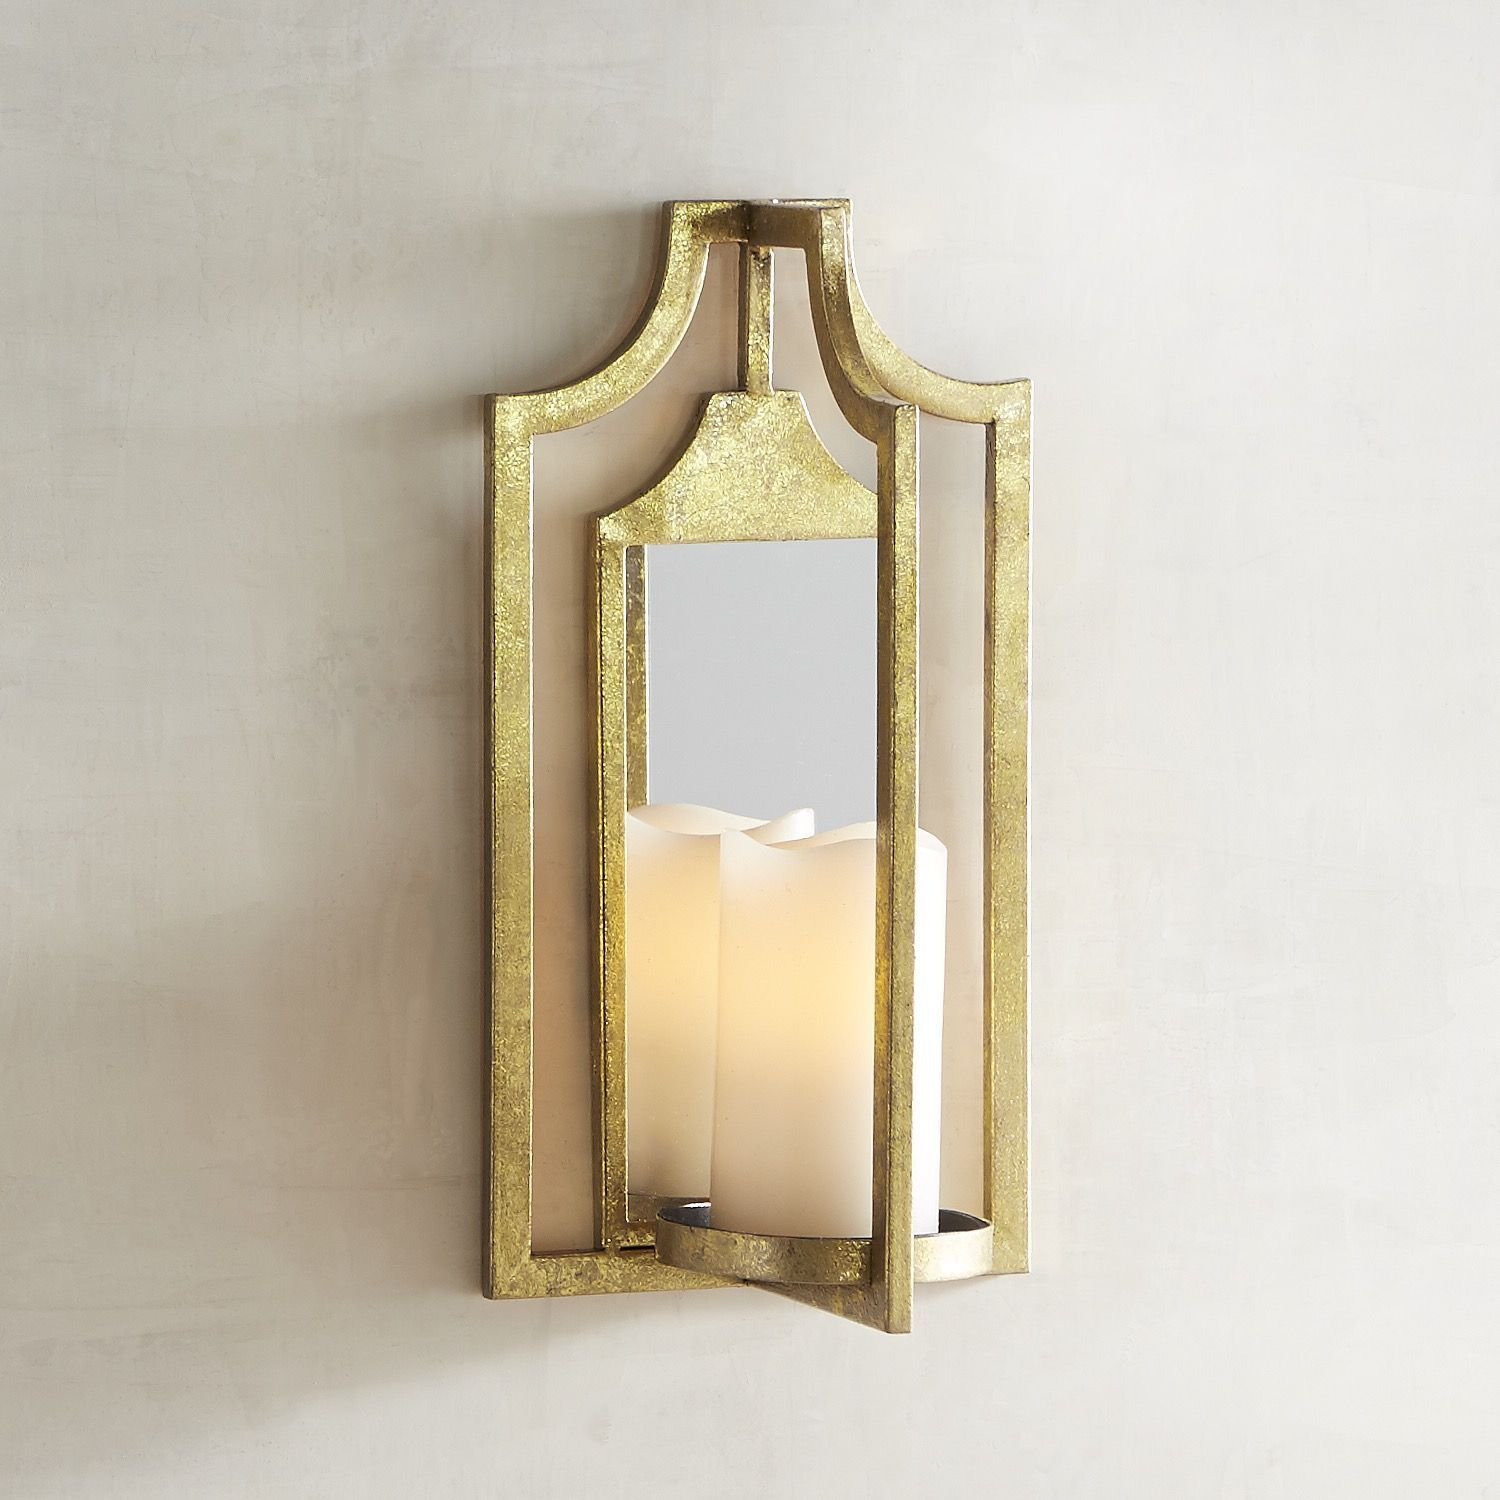 Alexander candle wall sconce in 2019 products candle wall